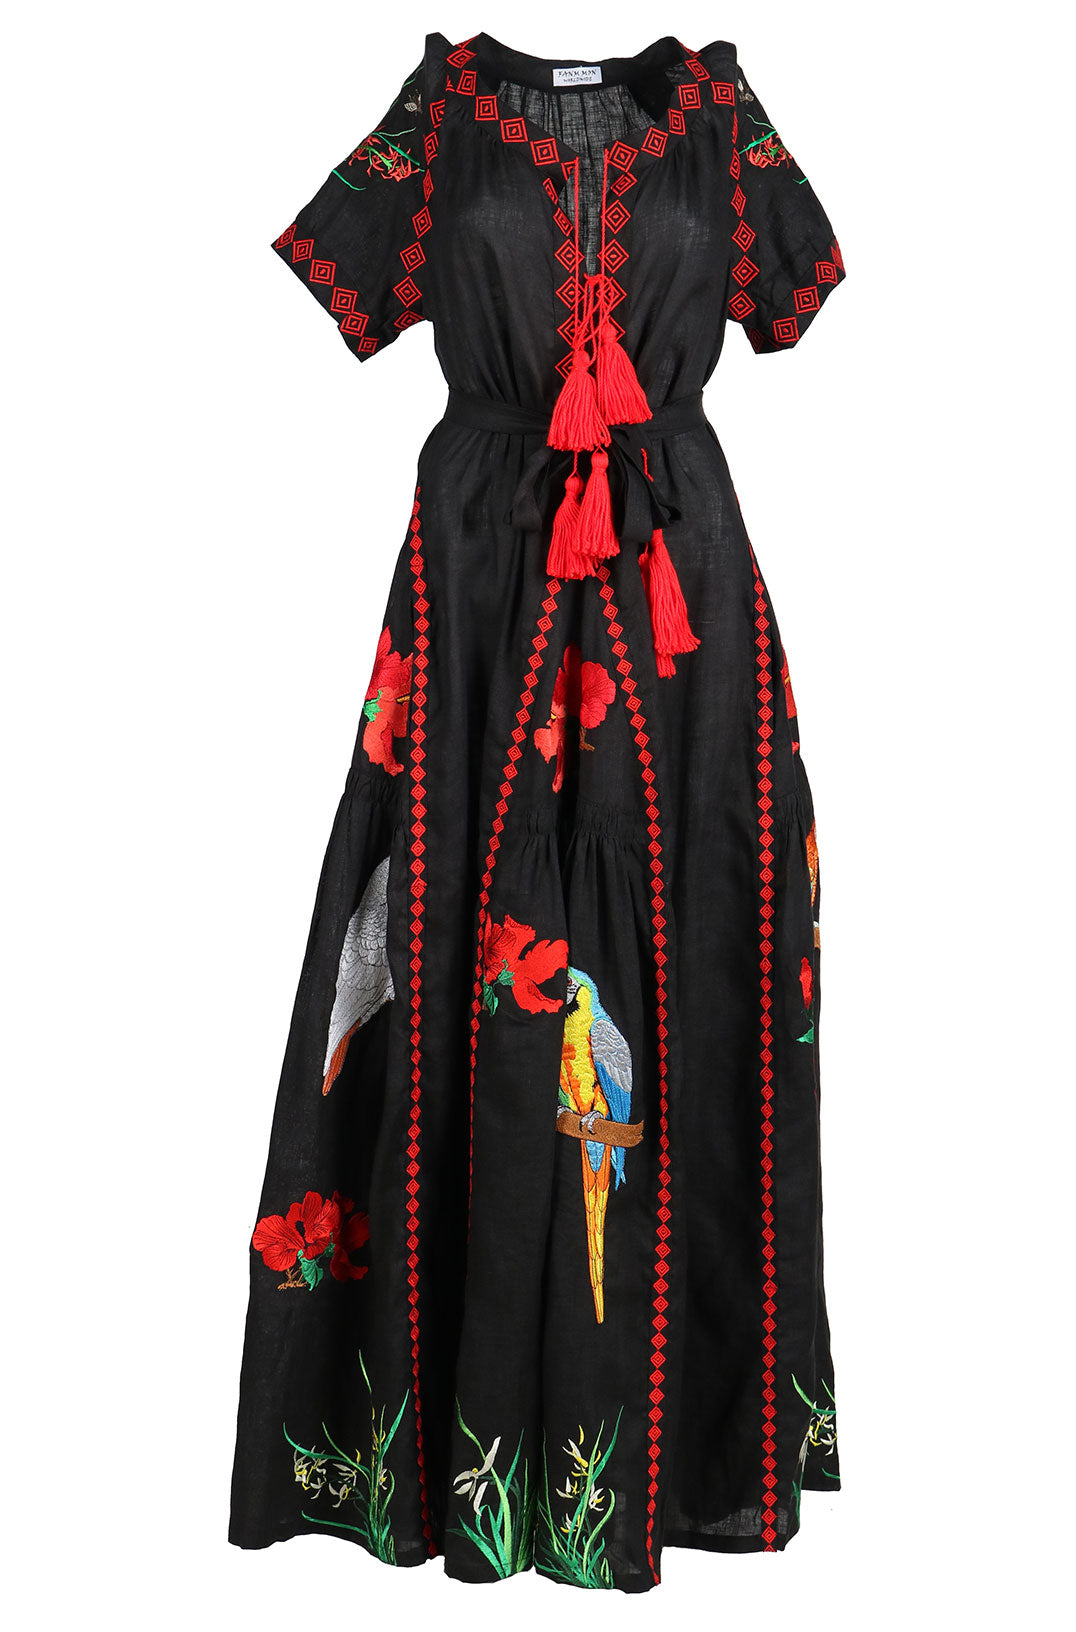 Fanm Mon HIBIS Black Linen Exotic Tropical Floral Embroidery Vyshyvanka MAXI Dress size XS-XXL